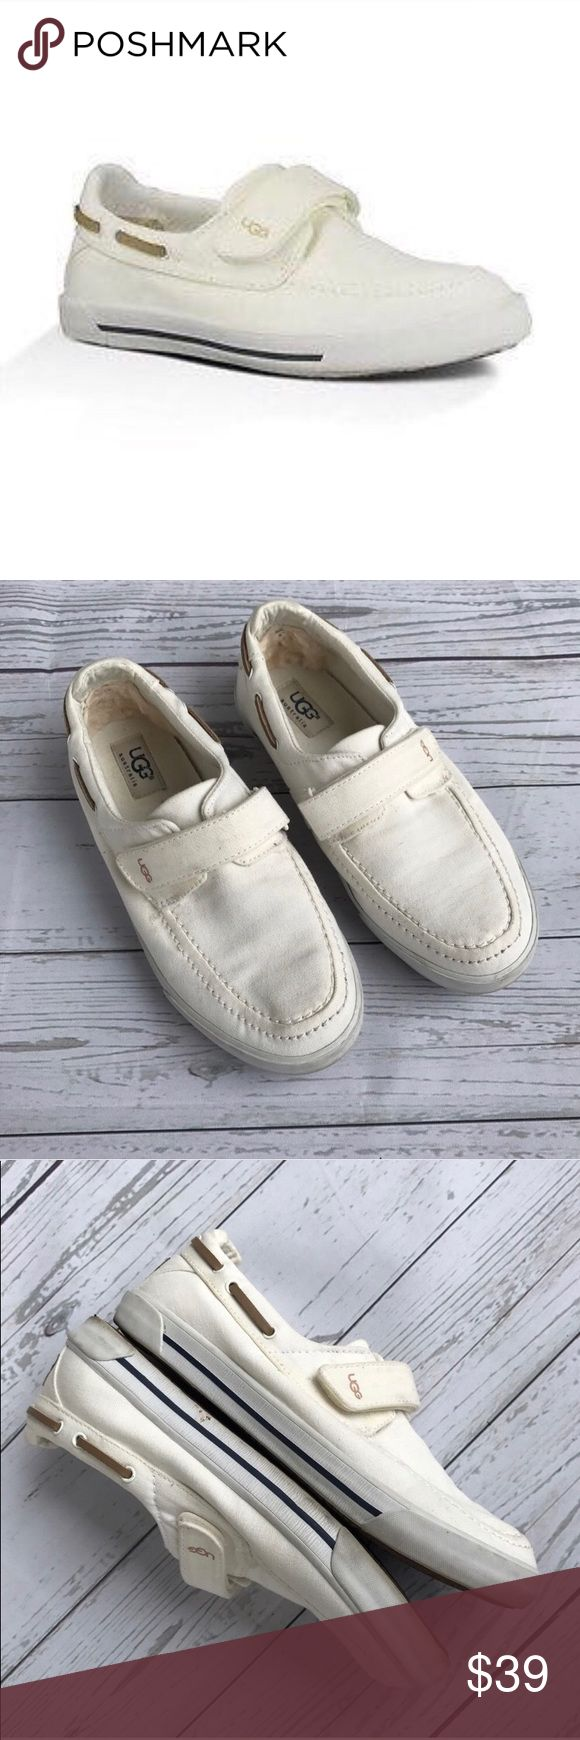 UGG cream half hitch canvas boat shoes youth 3 Authentic UGGs need a little cleaning, can also fit like a women's sz 5.5-6. They resemble a Sperry style boat show. Comes from a smoke free pet free home UGG Shoes